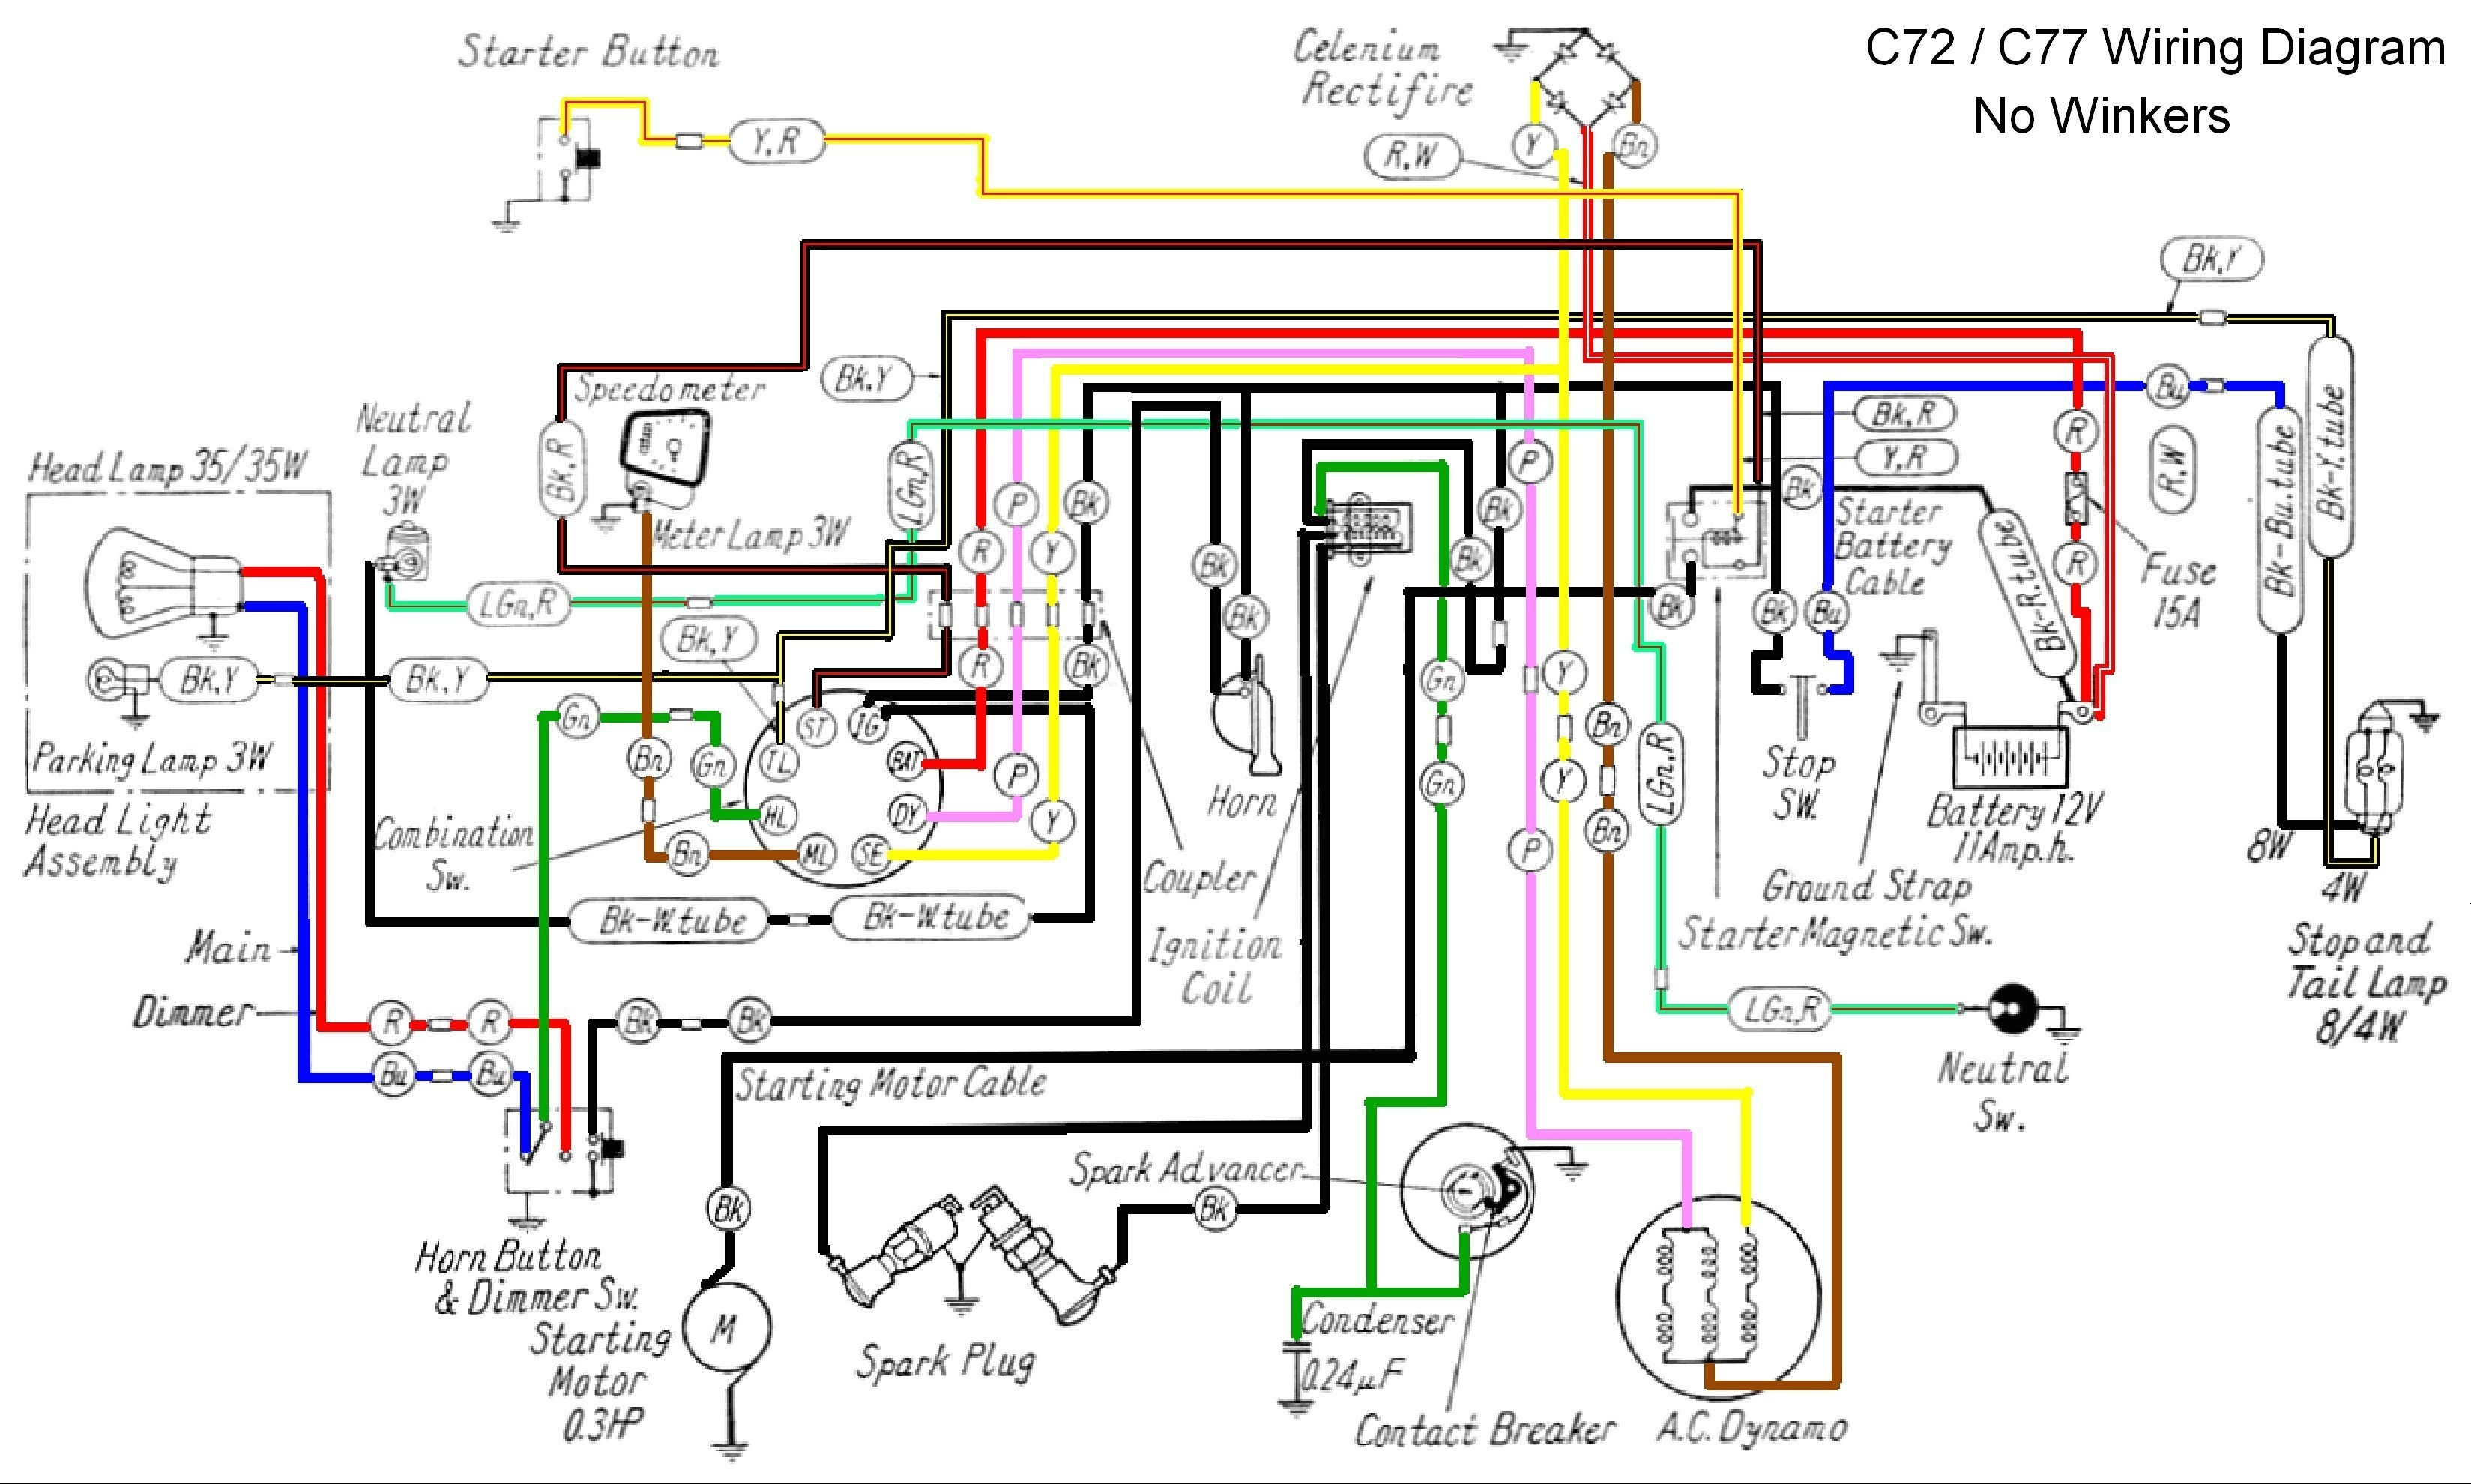 Vfr Wiring Diagram